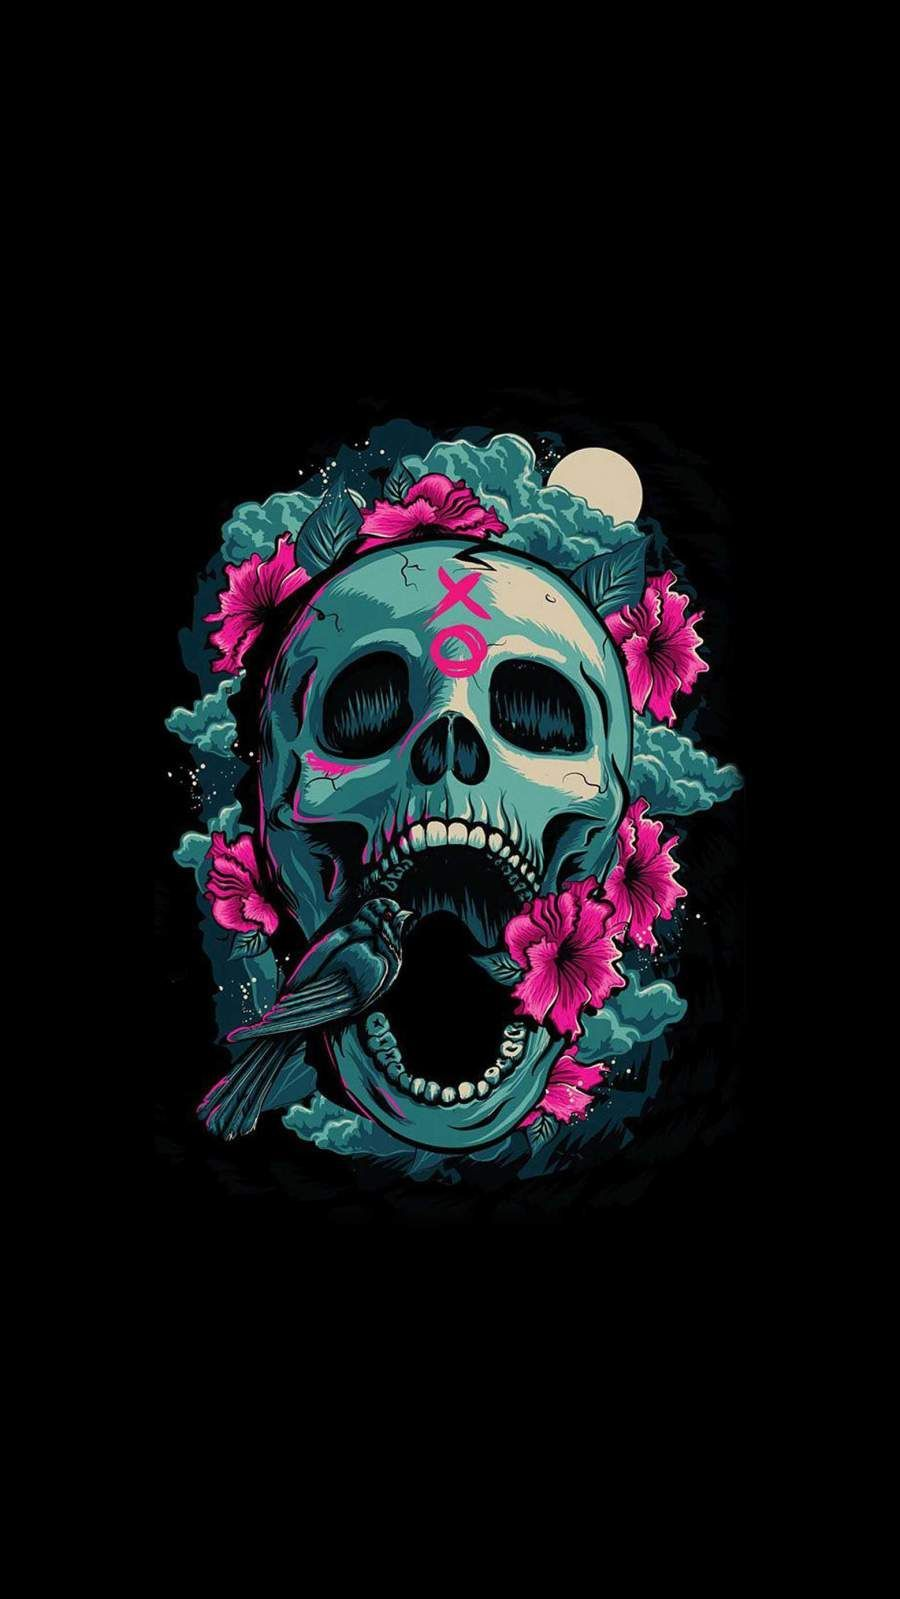 Abstract Skull Cool Iphone Wallpapers Top Free Abstract Skull Cool Iphone Backgrounds Wallpaperaccess